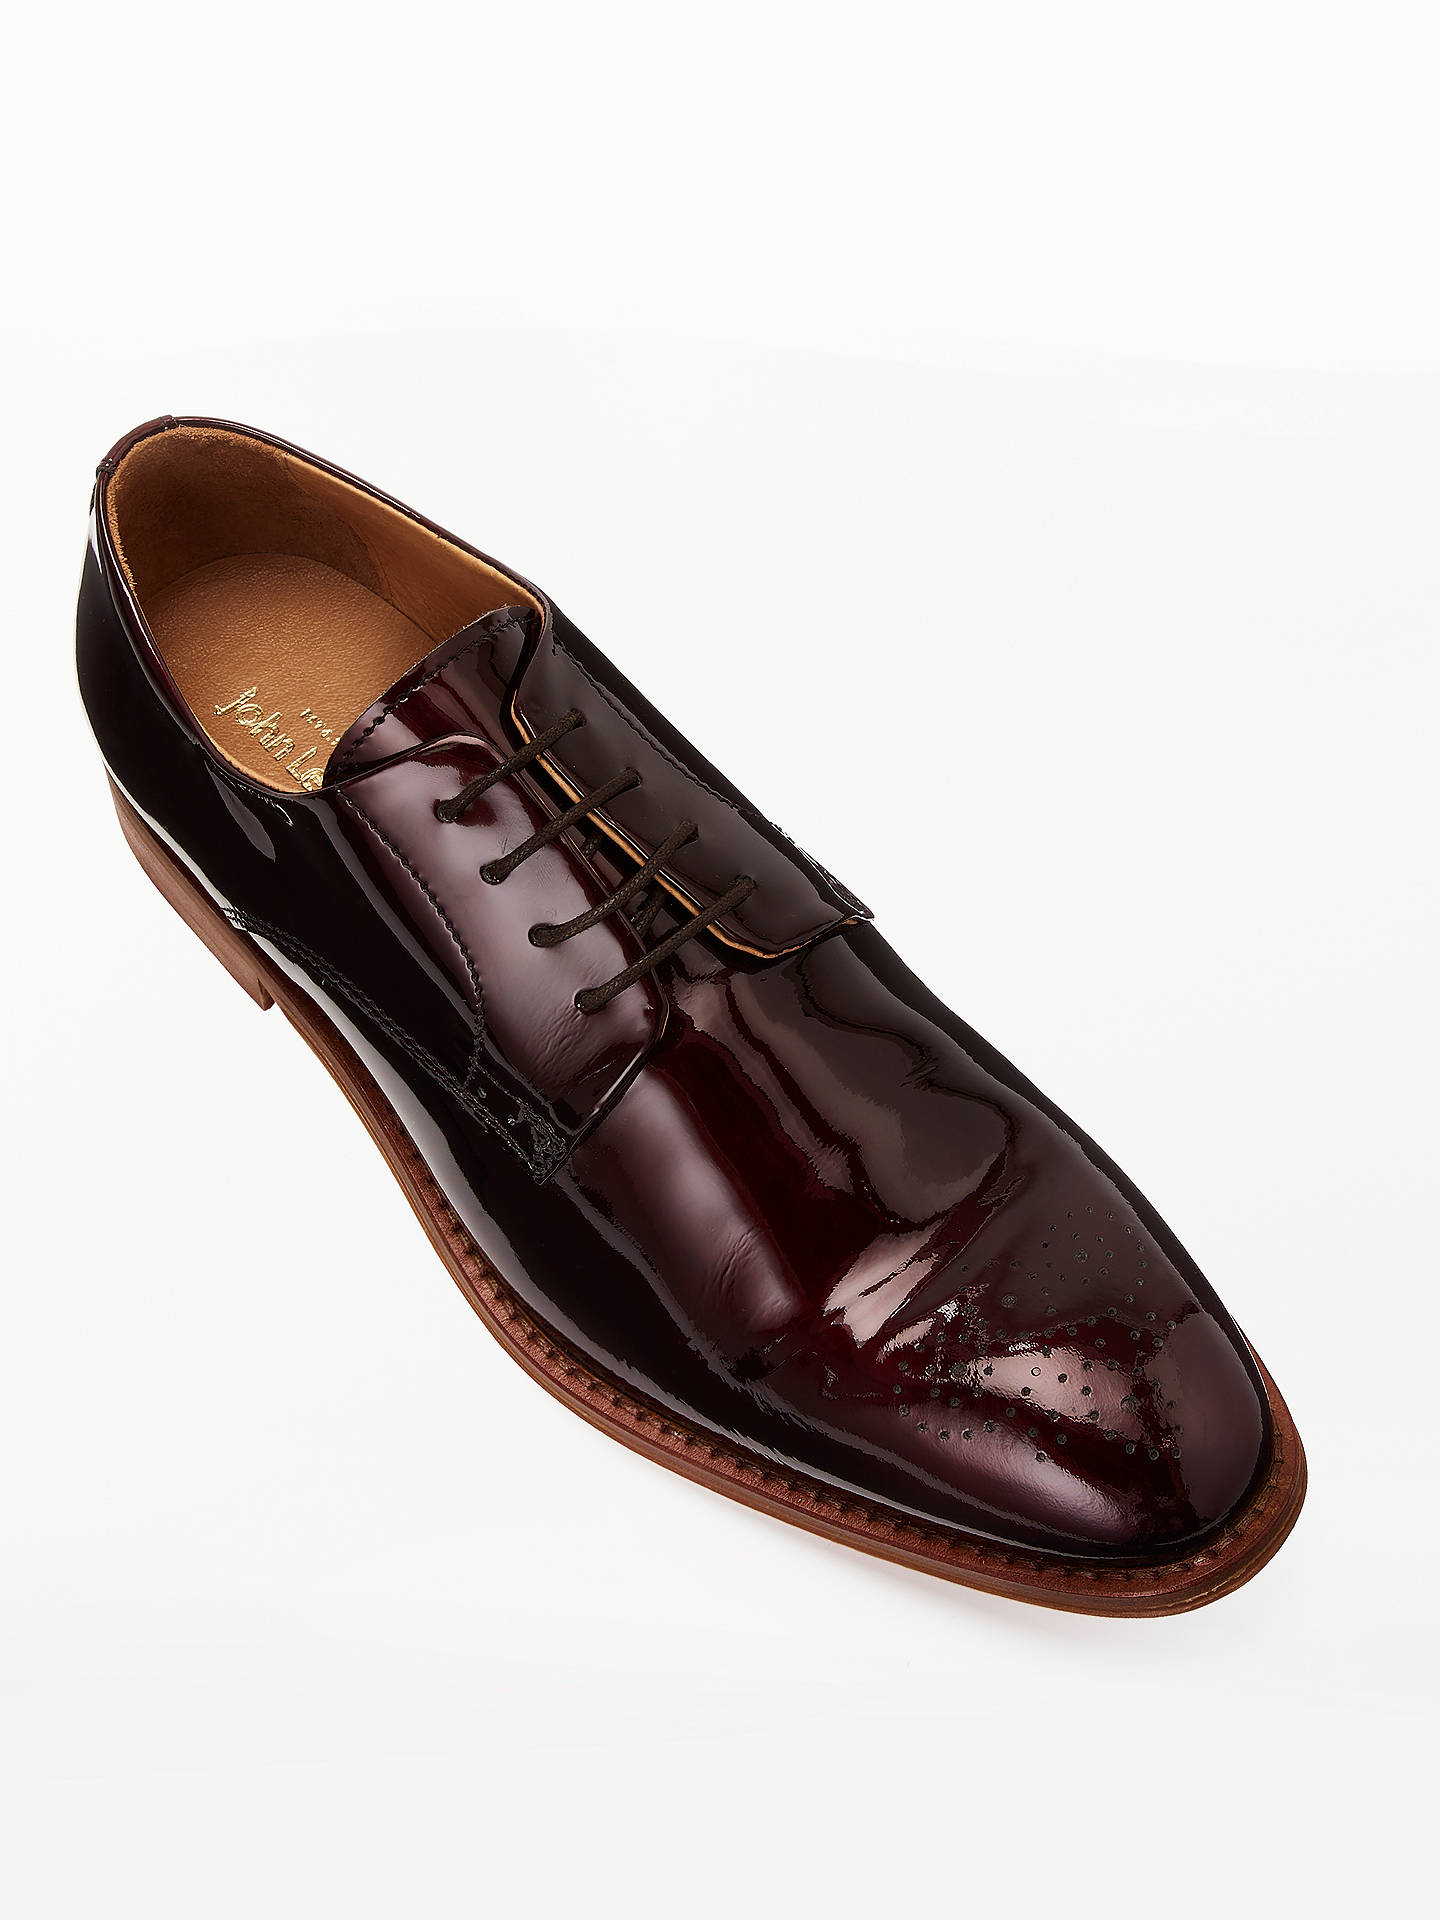 BuyJohn Lewis & Partners Hubert Patent Derby Brogues, Red, 7 Online at johnlewis.com